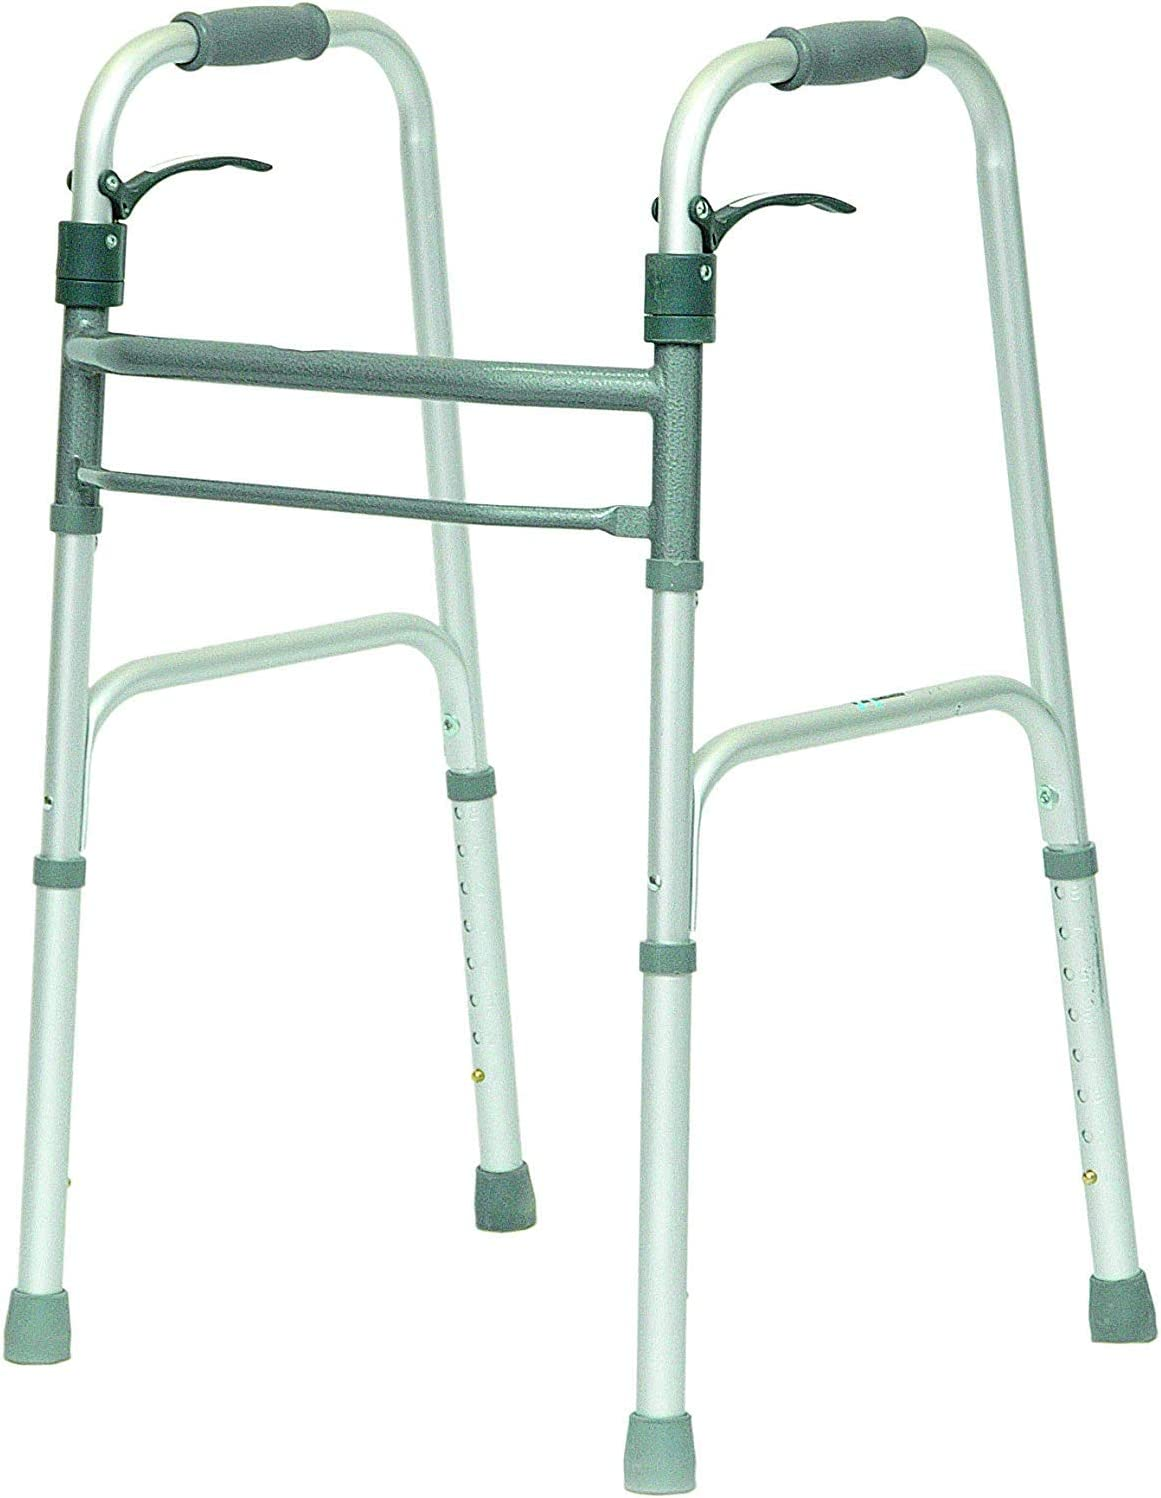 HEALTHLINE Walker Folding Deluxe 2 Button Without Wheels, Lightweight Foldable Mobility Walker No Wheels for Adult Seniors Disabled, Adjustable Height for Short, Average and Tall People: Health & Personal Care